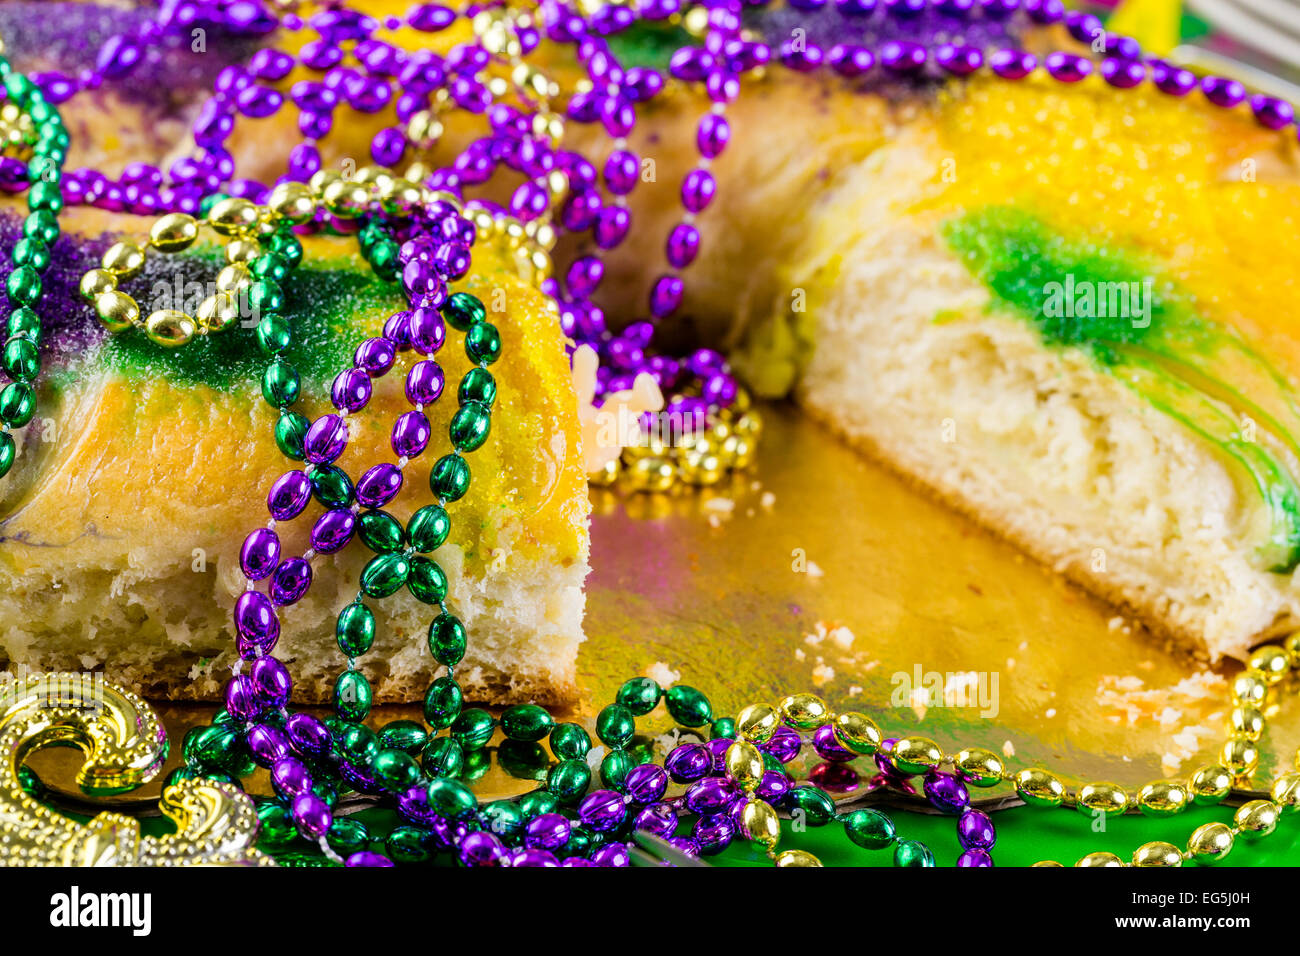 Table Decorated For Mardi Gras Party Stock Photo 78799857